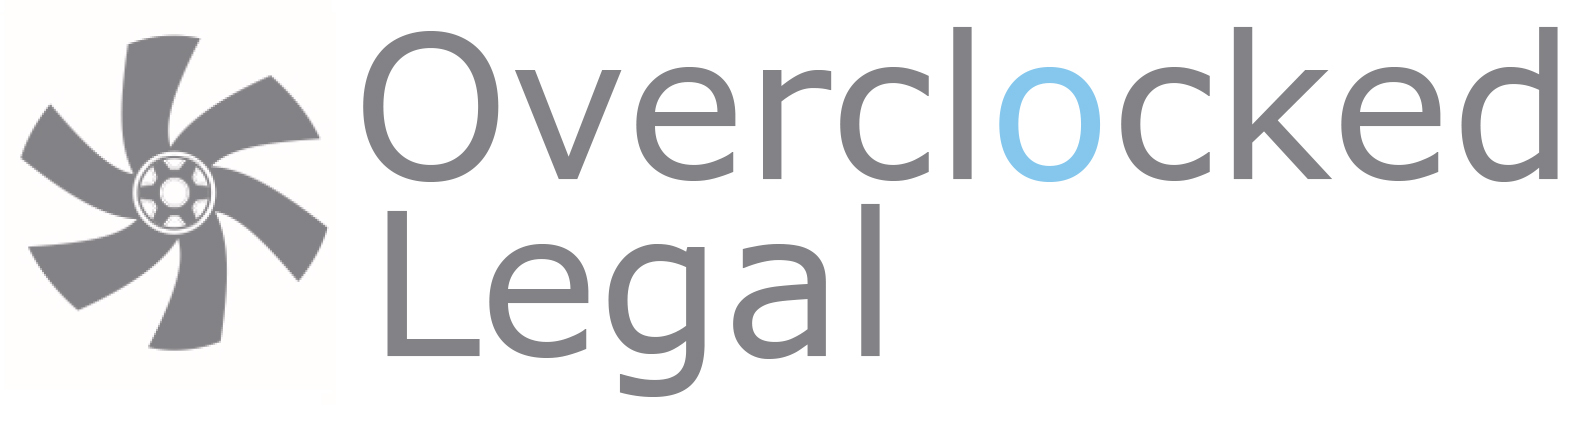 Overclocked Legal